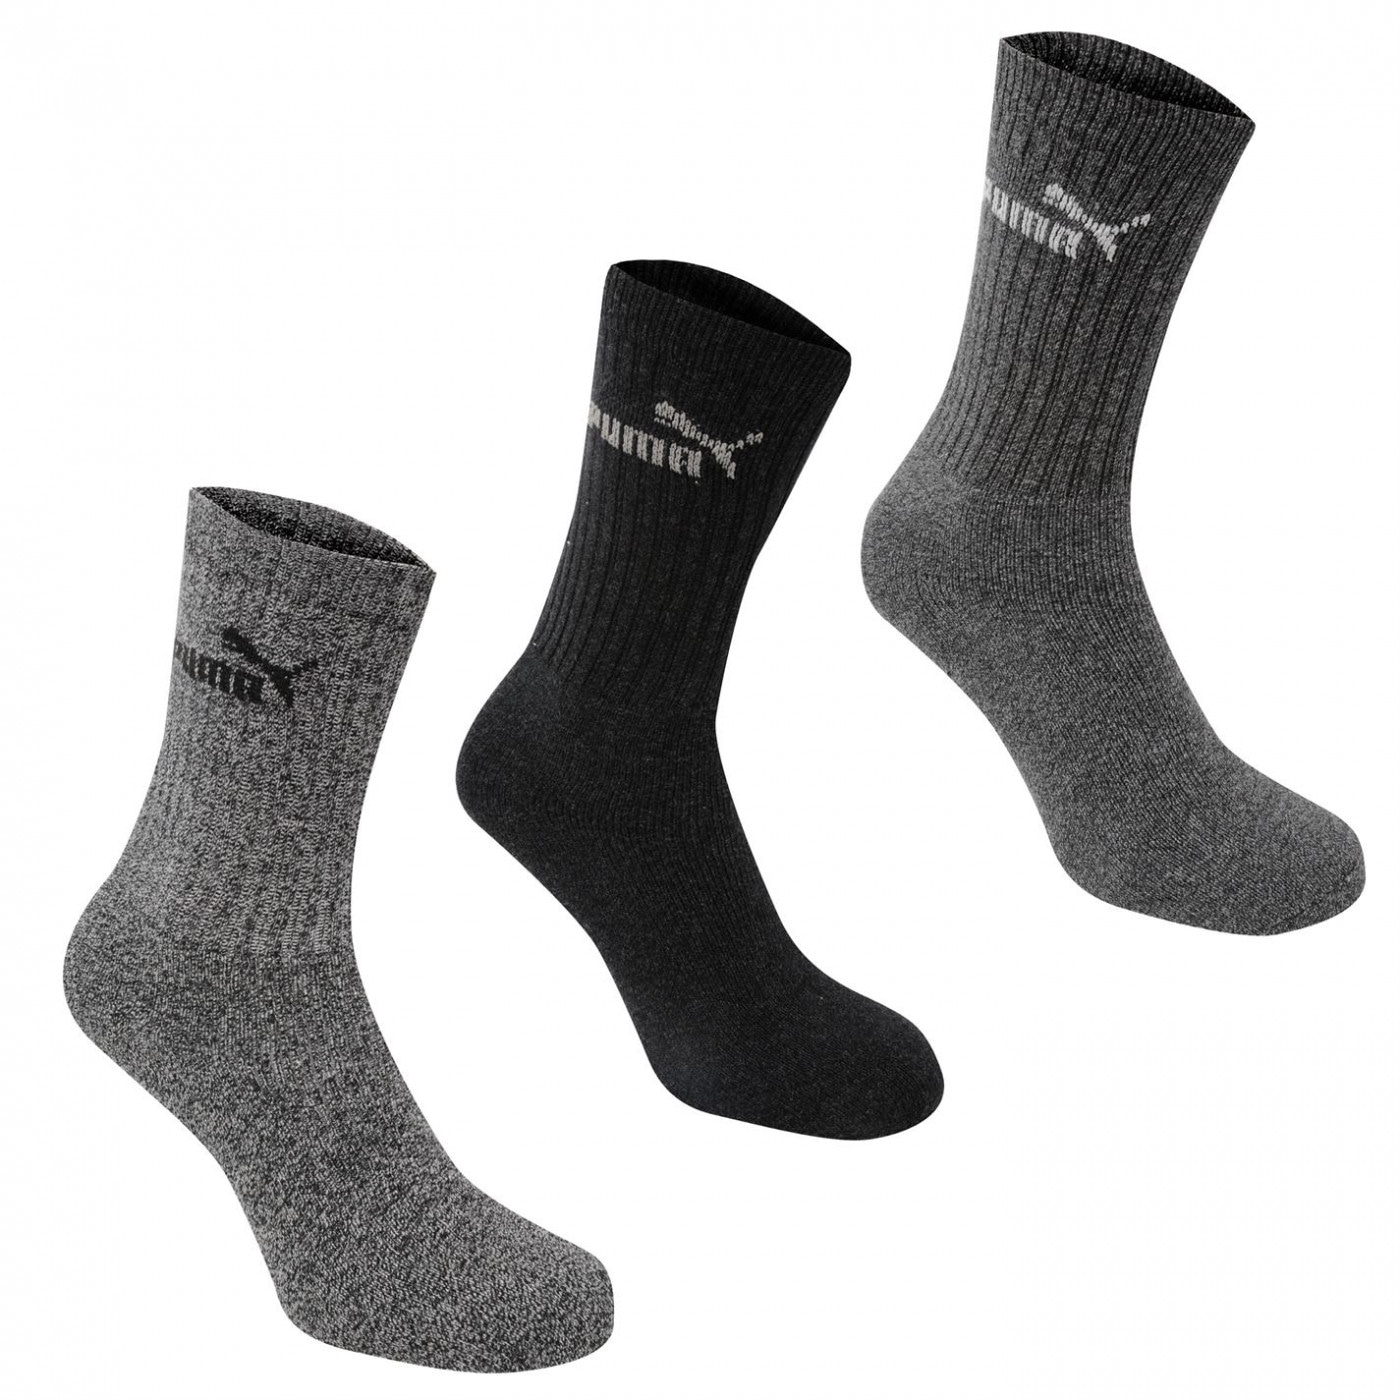 Puma 3 Pack Crew Socks Mens